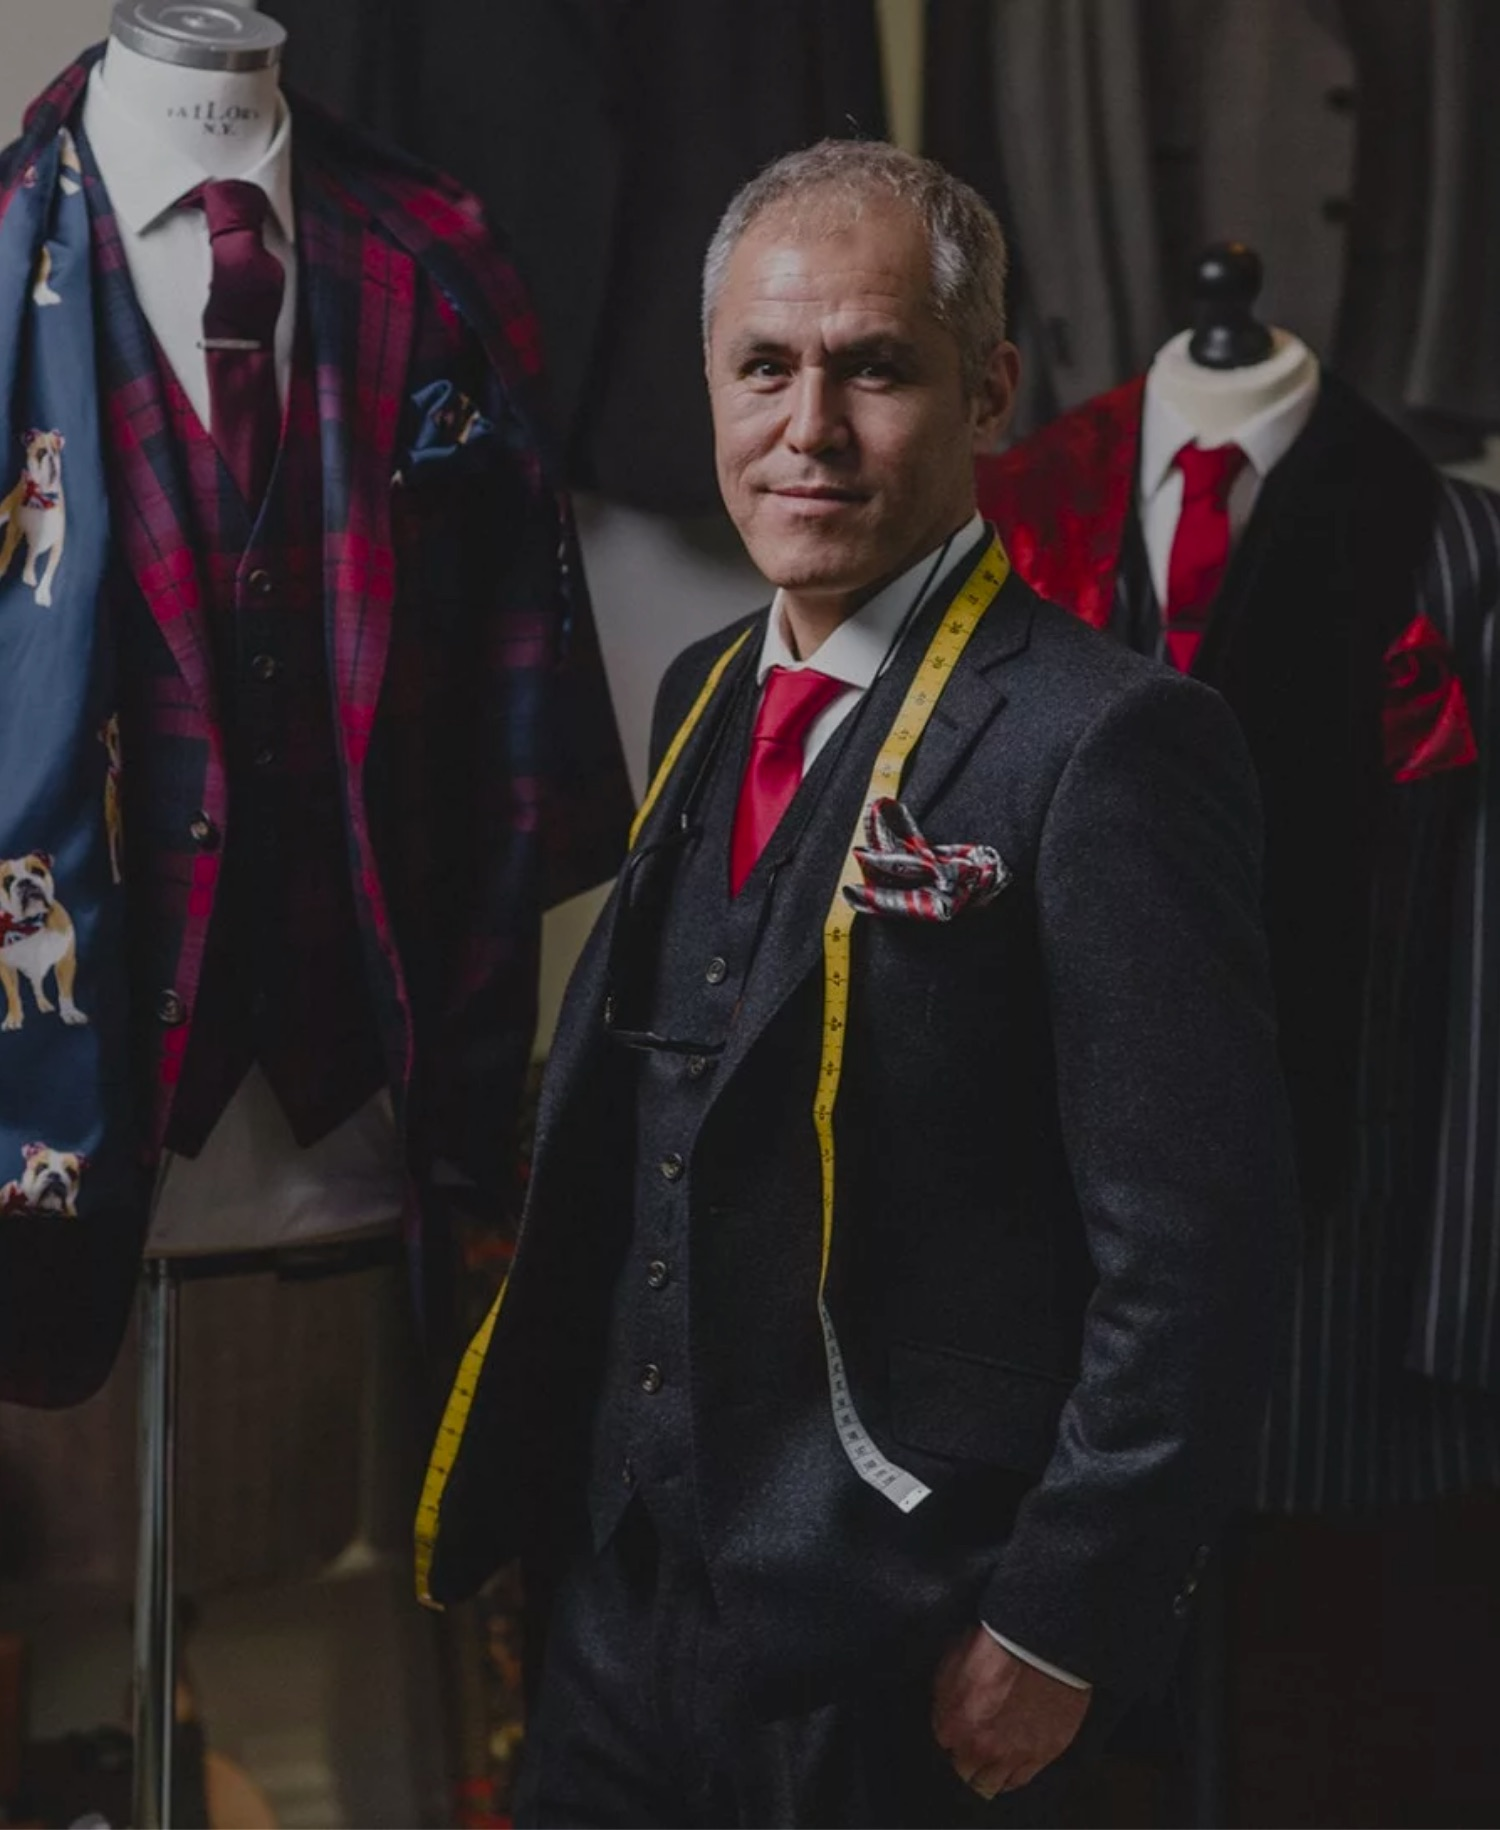 Sharif the tailor in Exeter